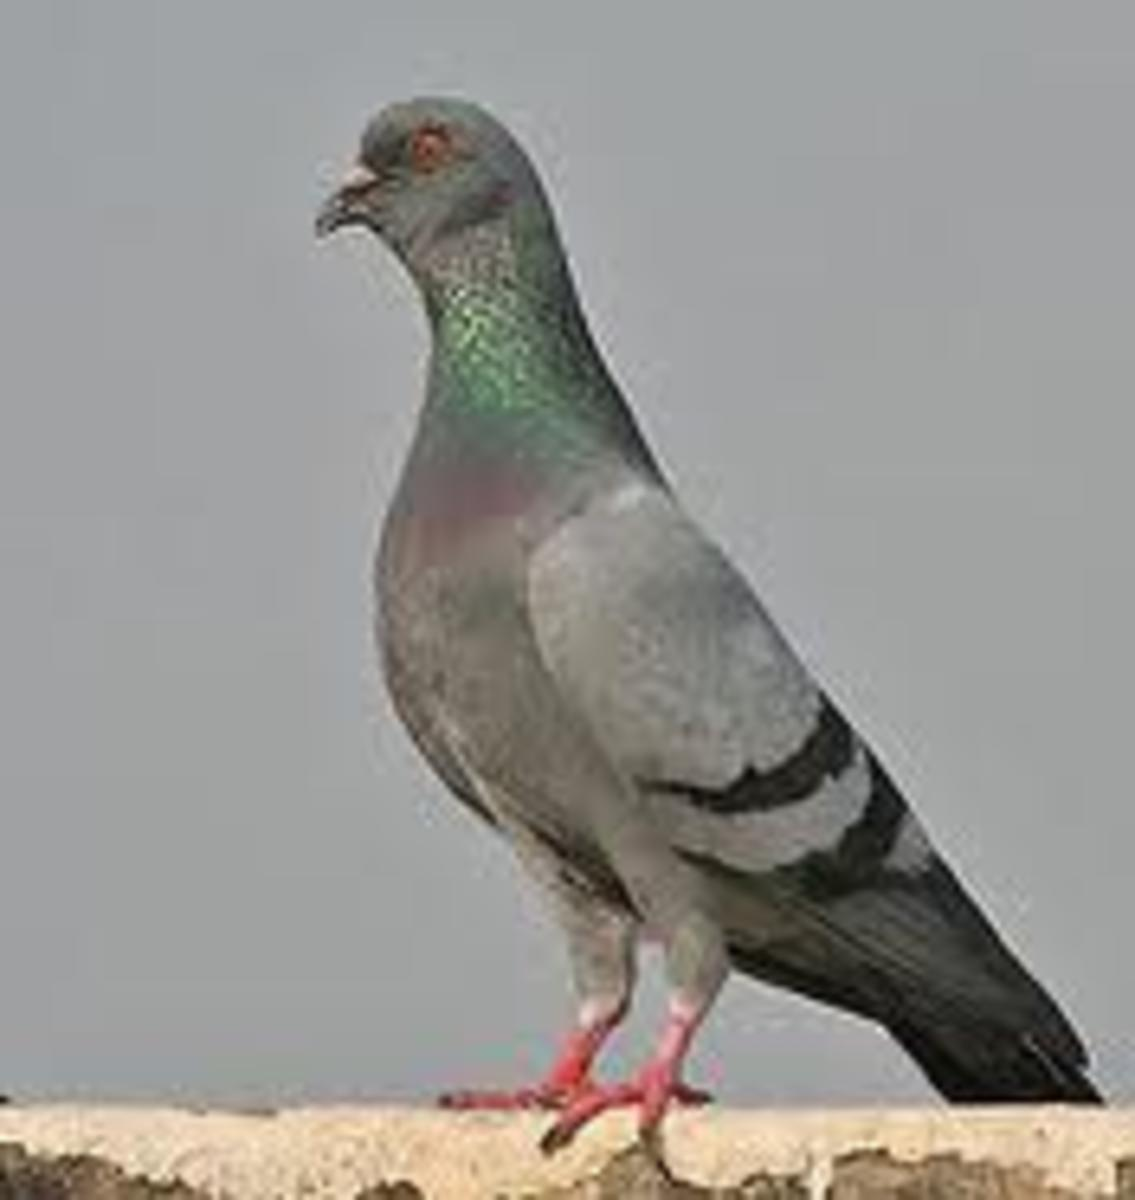 A Rock Pigeon, courtesy of Wikipedia